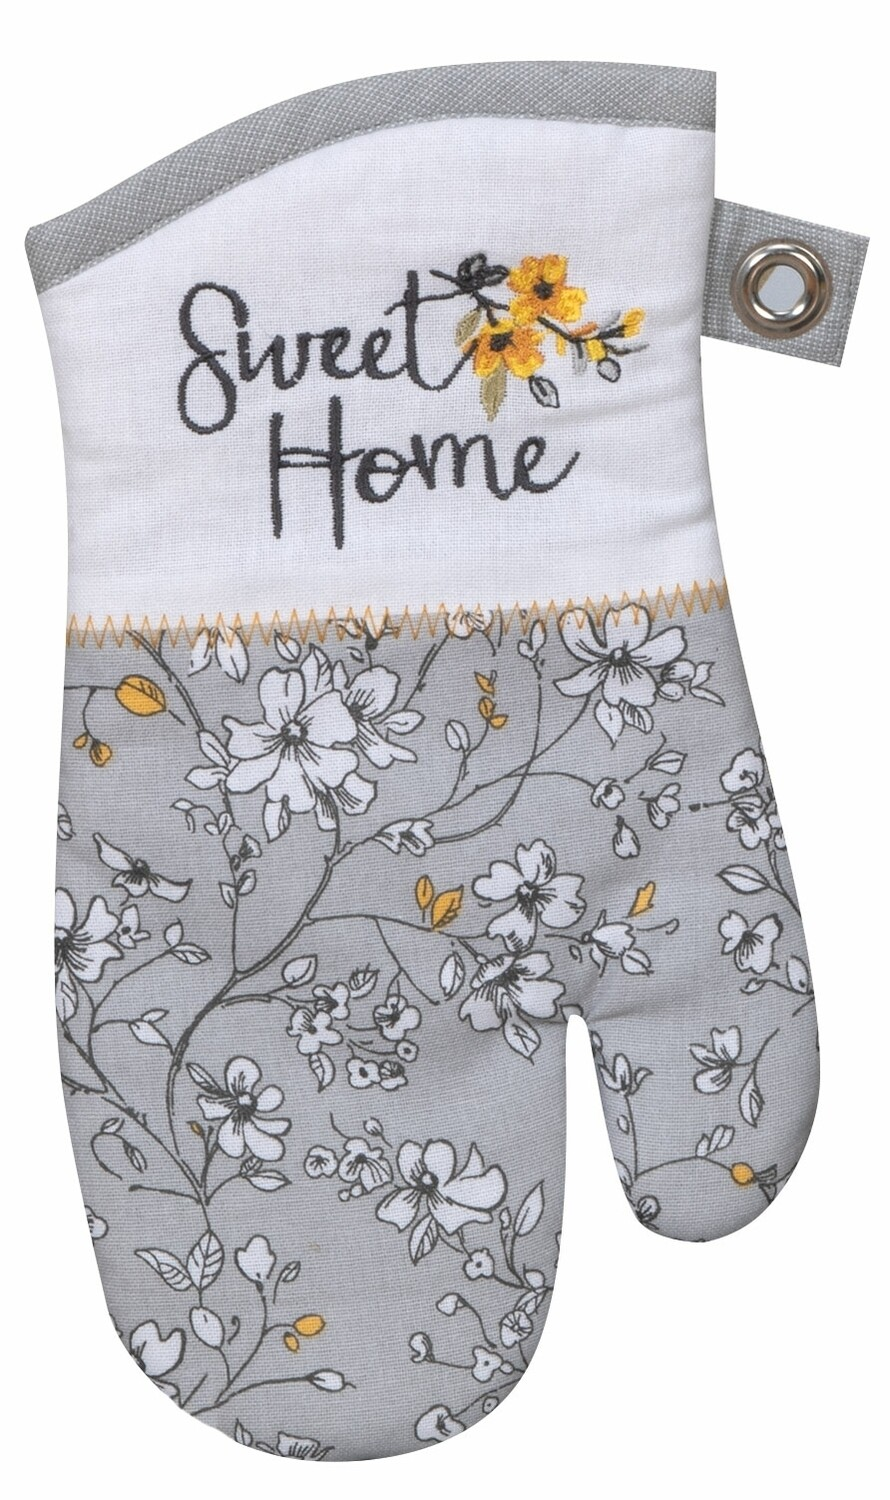 Kay Dee Designs Embroidered Oven Mitt   Sweet Home